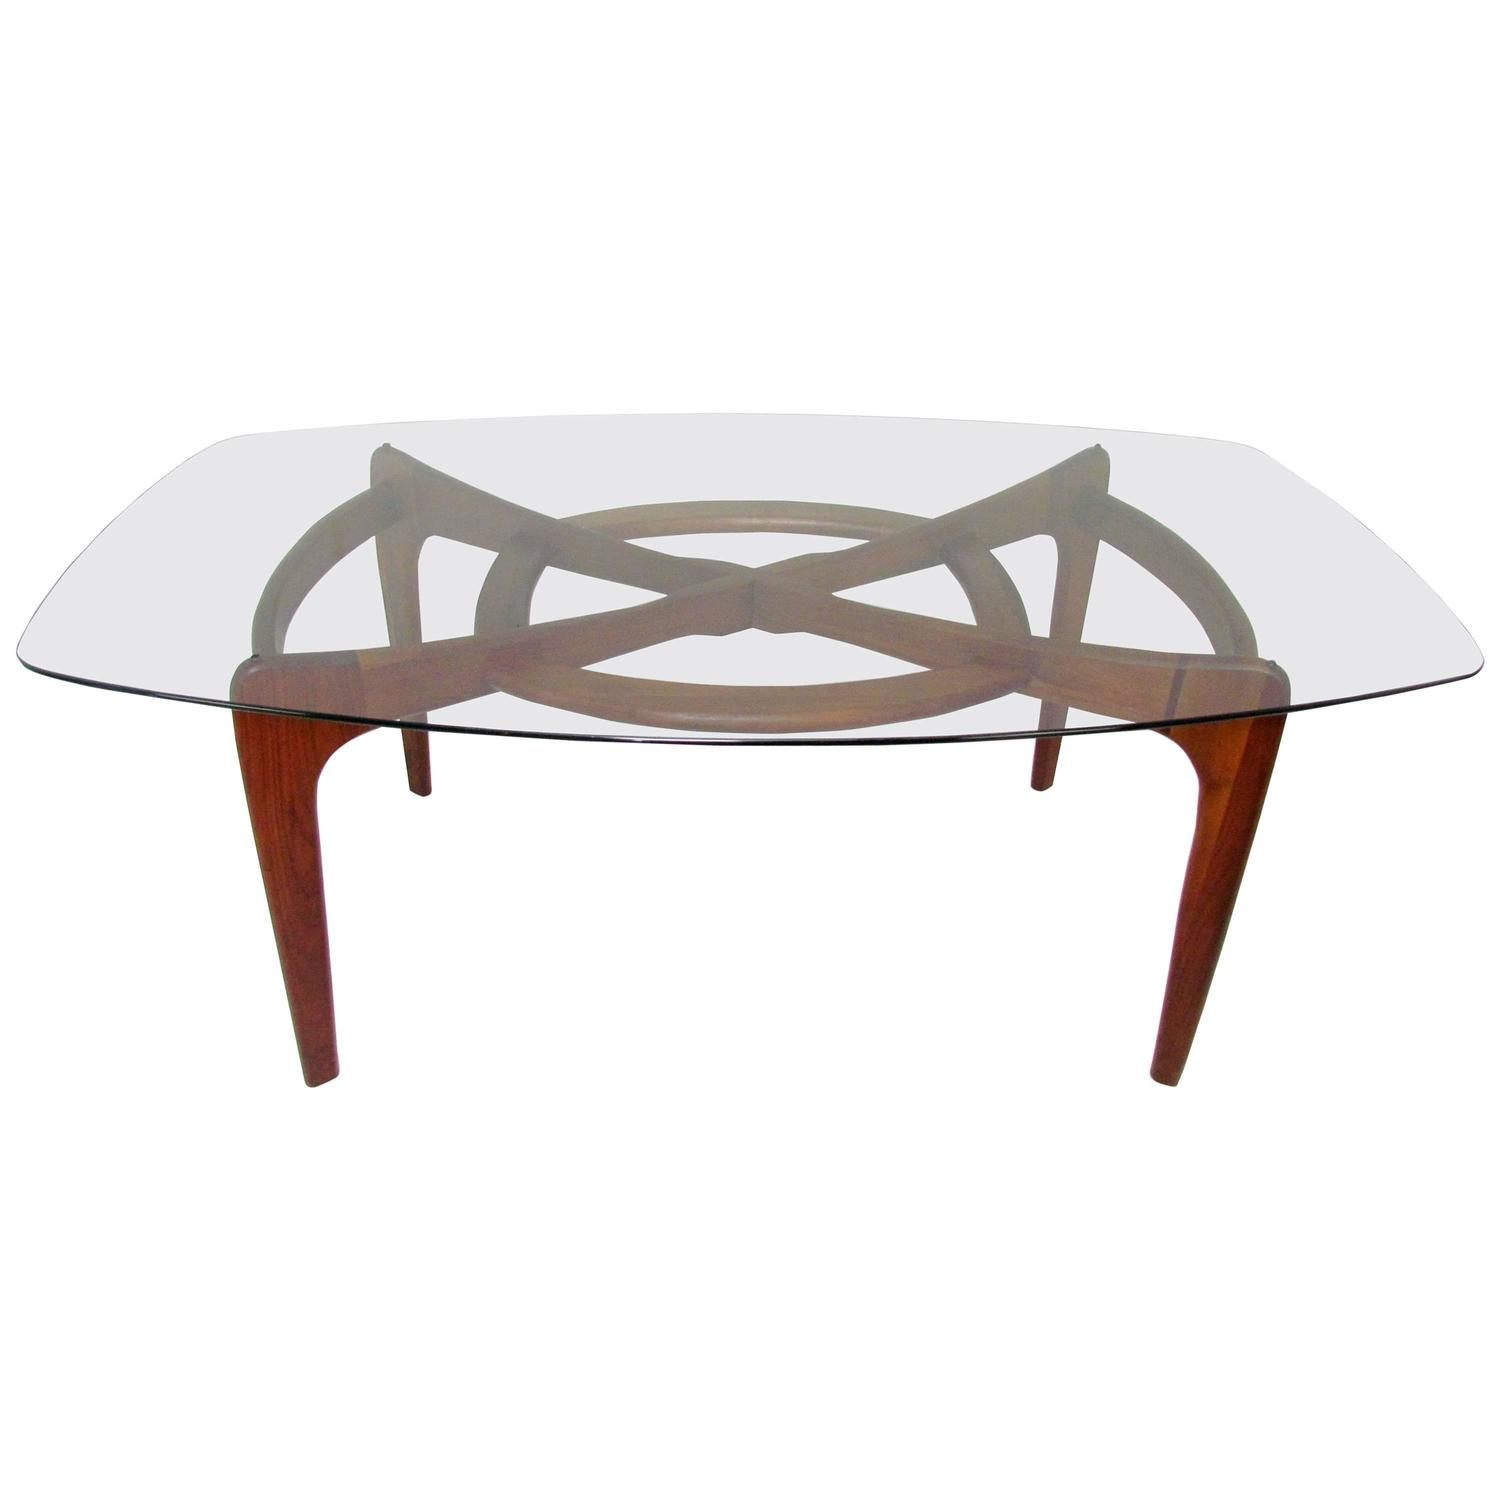 Adrian Pearsall Tables 104 For Sale at 1stdibs